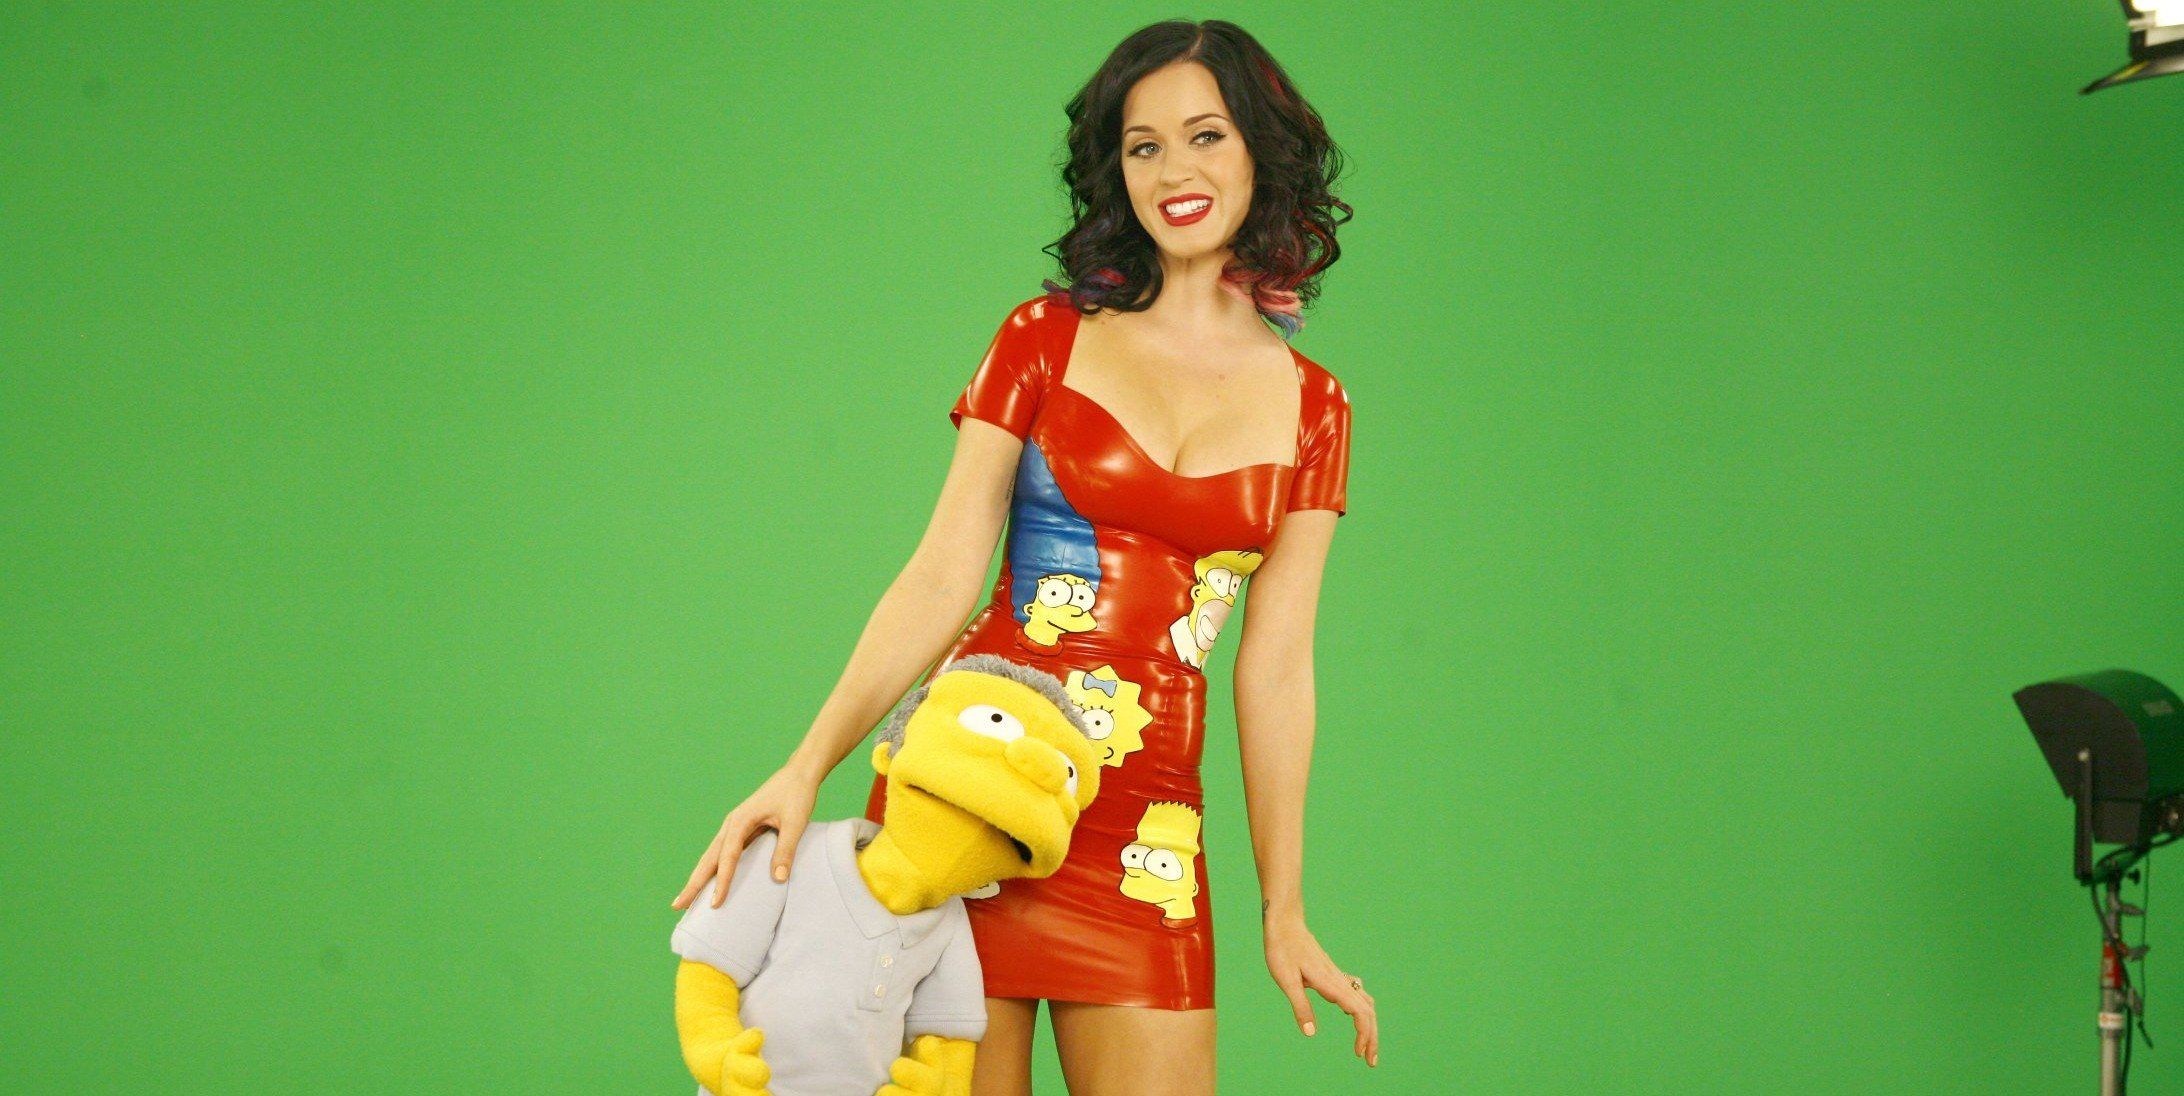 kate perry simpsons